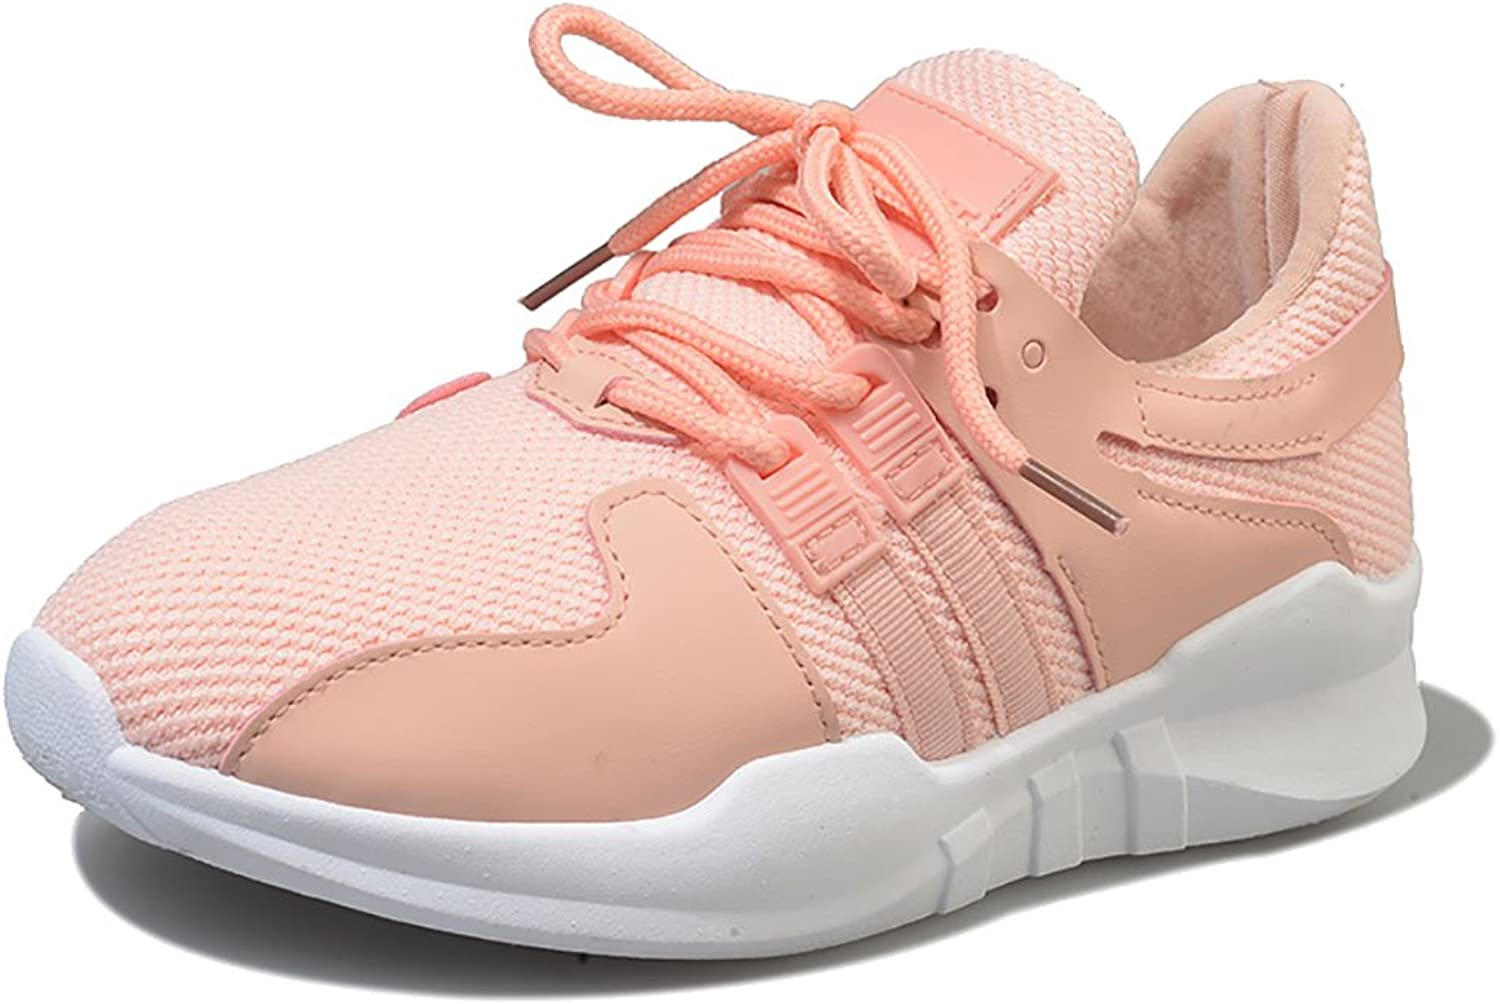 Scennek Female Leisure Sneakers Sporting shoes Country Running